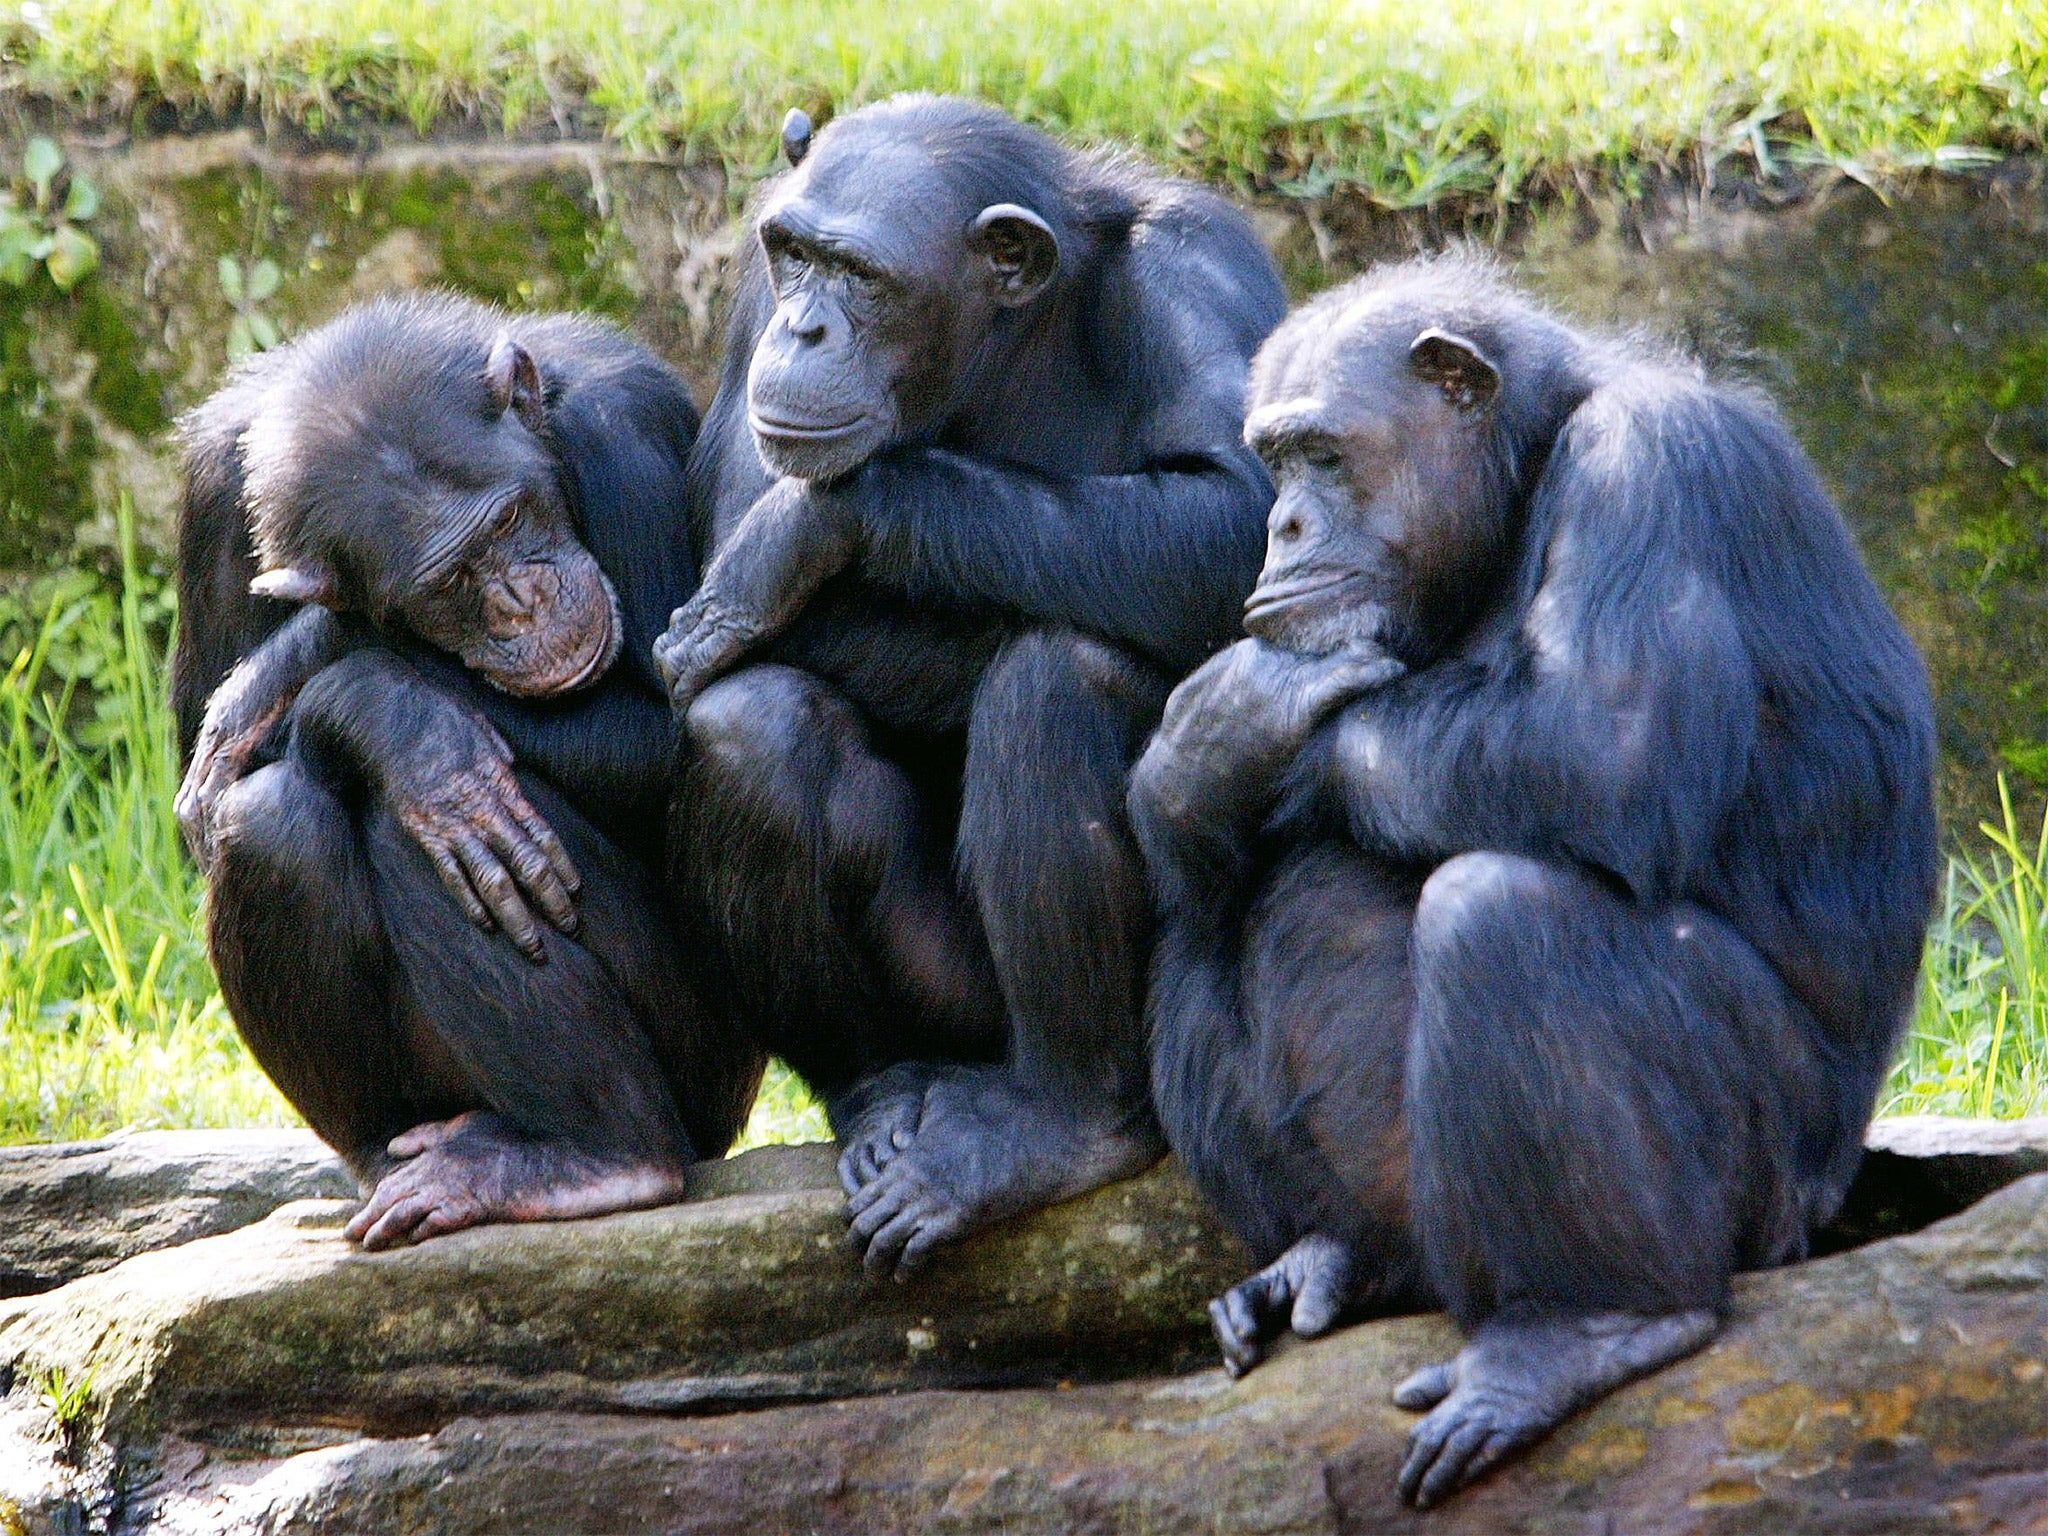 animal independent politics humans alone getty arent